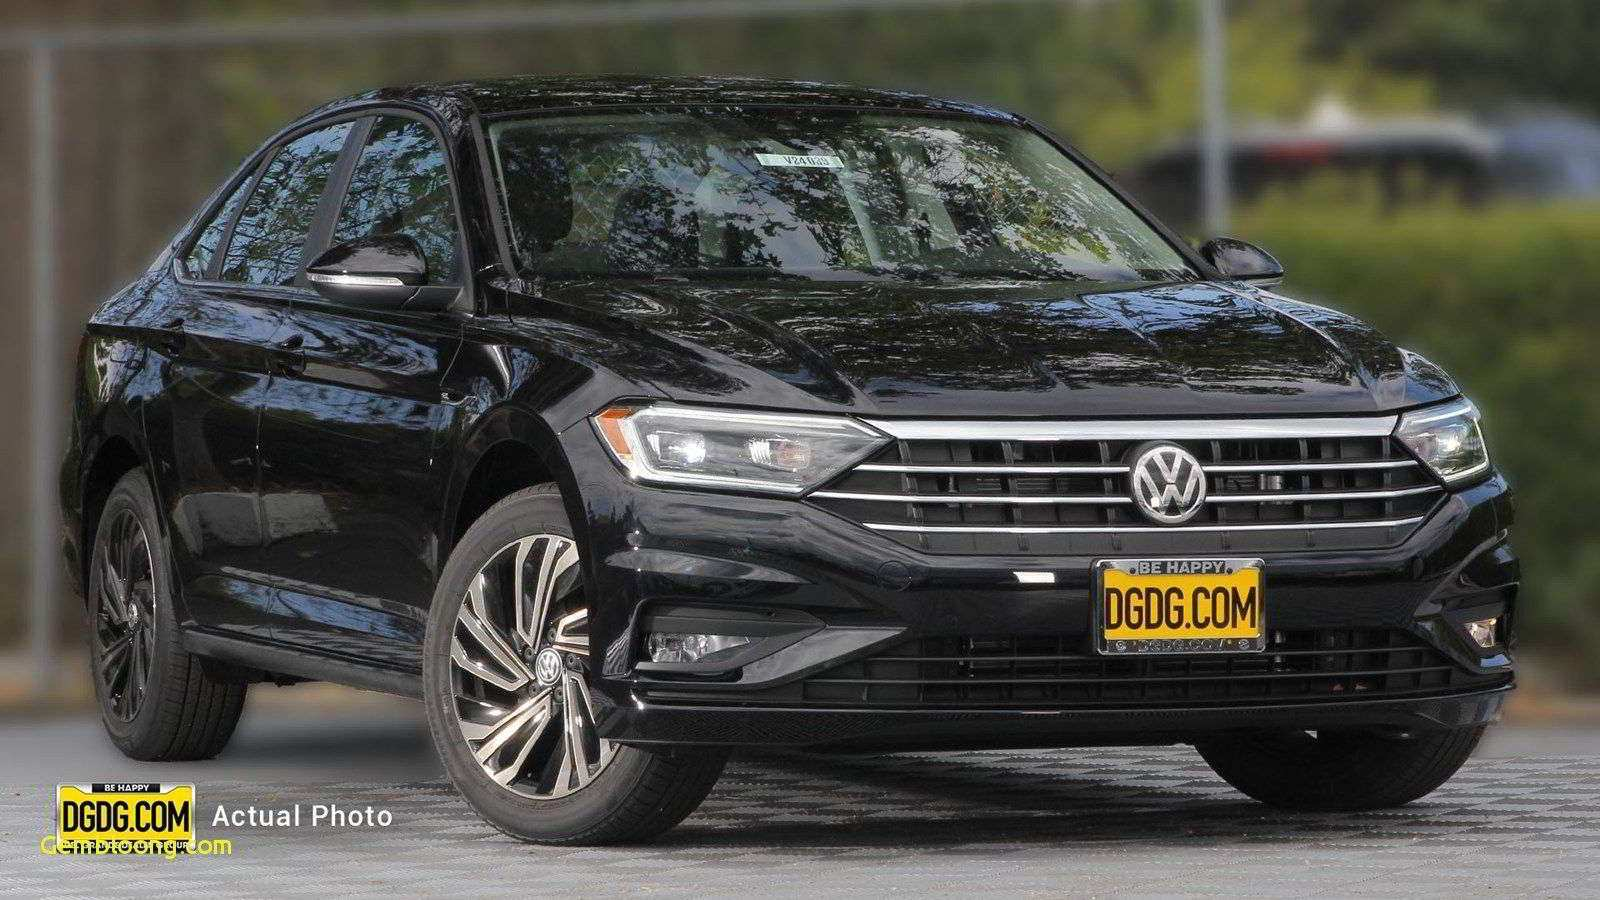 78 The 2020 Vw Jetta Tdi Price and Review with 2020 Vw Jetta Tdi